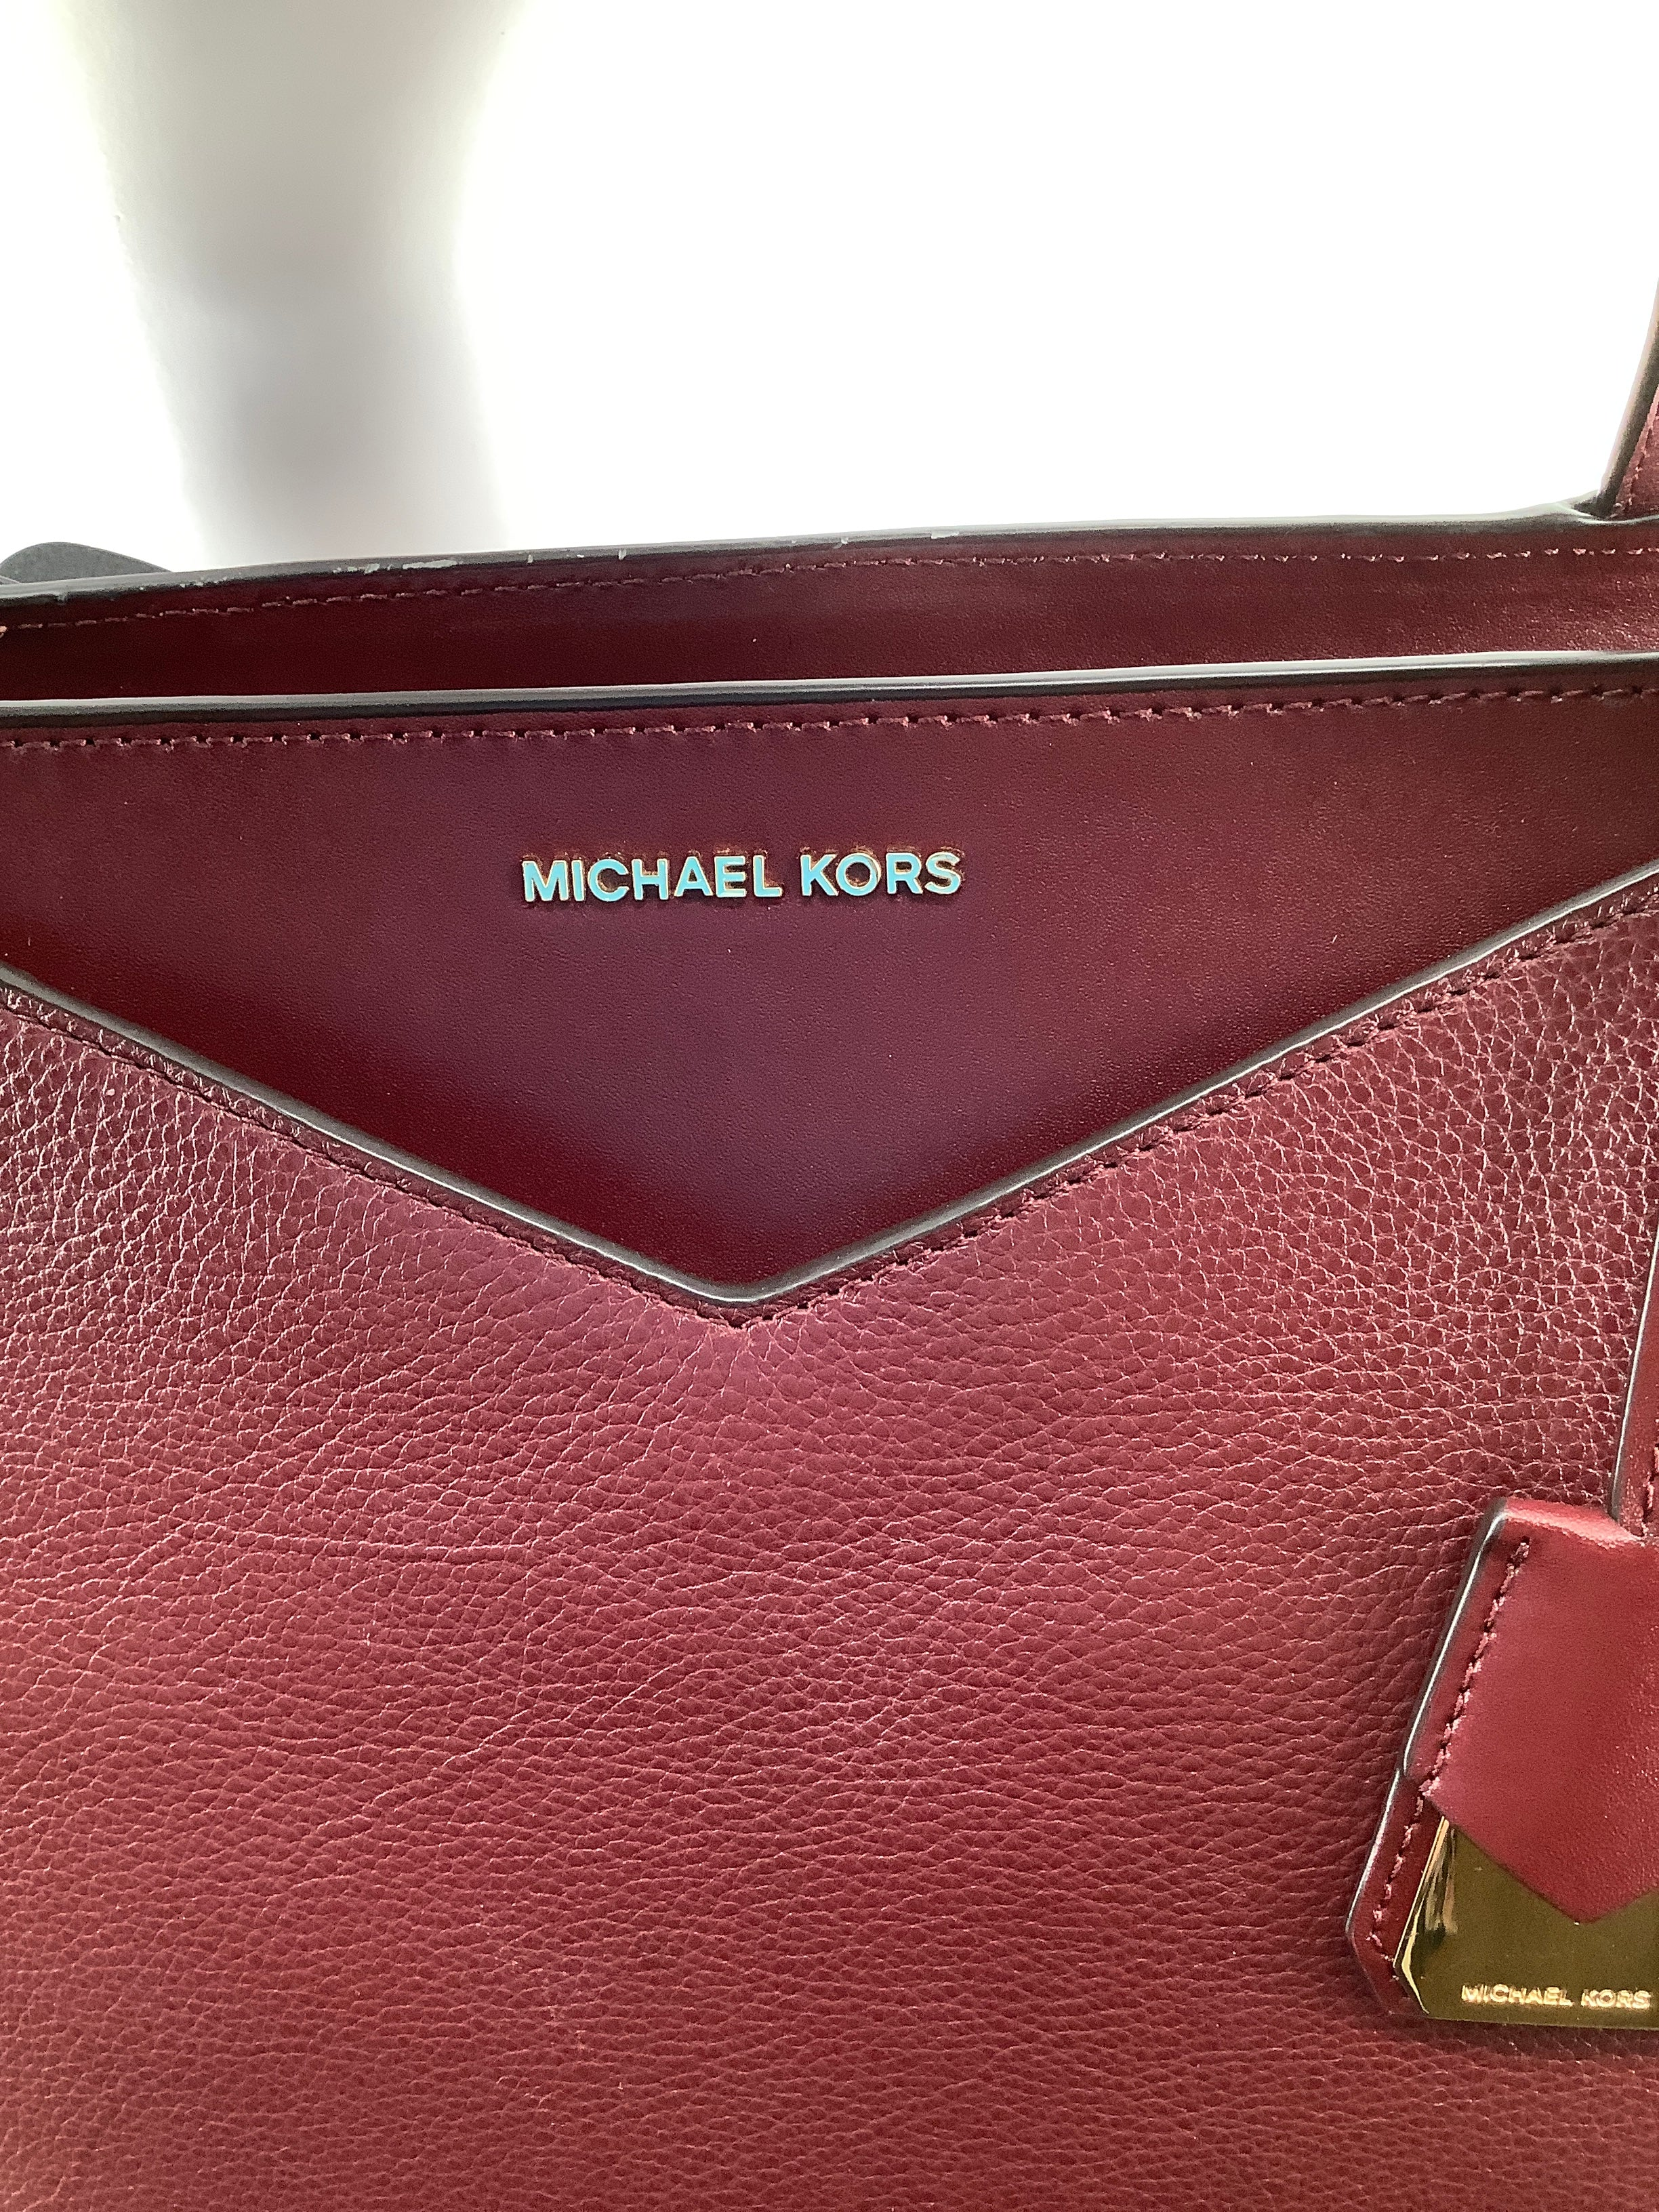 Photo #1 - BRAND: MICHAEL KORS , STYLE: HANDBAG DESIGNER , COLOR: BURGUNDY , SIZE: LARGE , OTHER INFO: AS IS DUE TO COSMETIC WEAR. AS SEEN IN PICTURES, SKU: 105-3752-29907